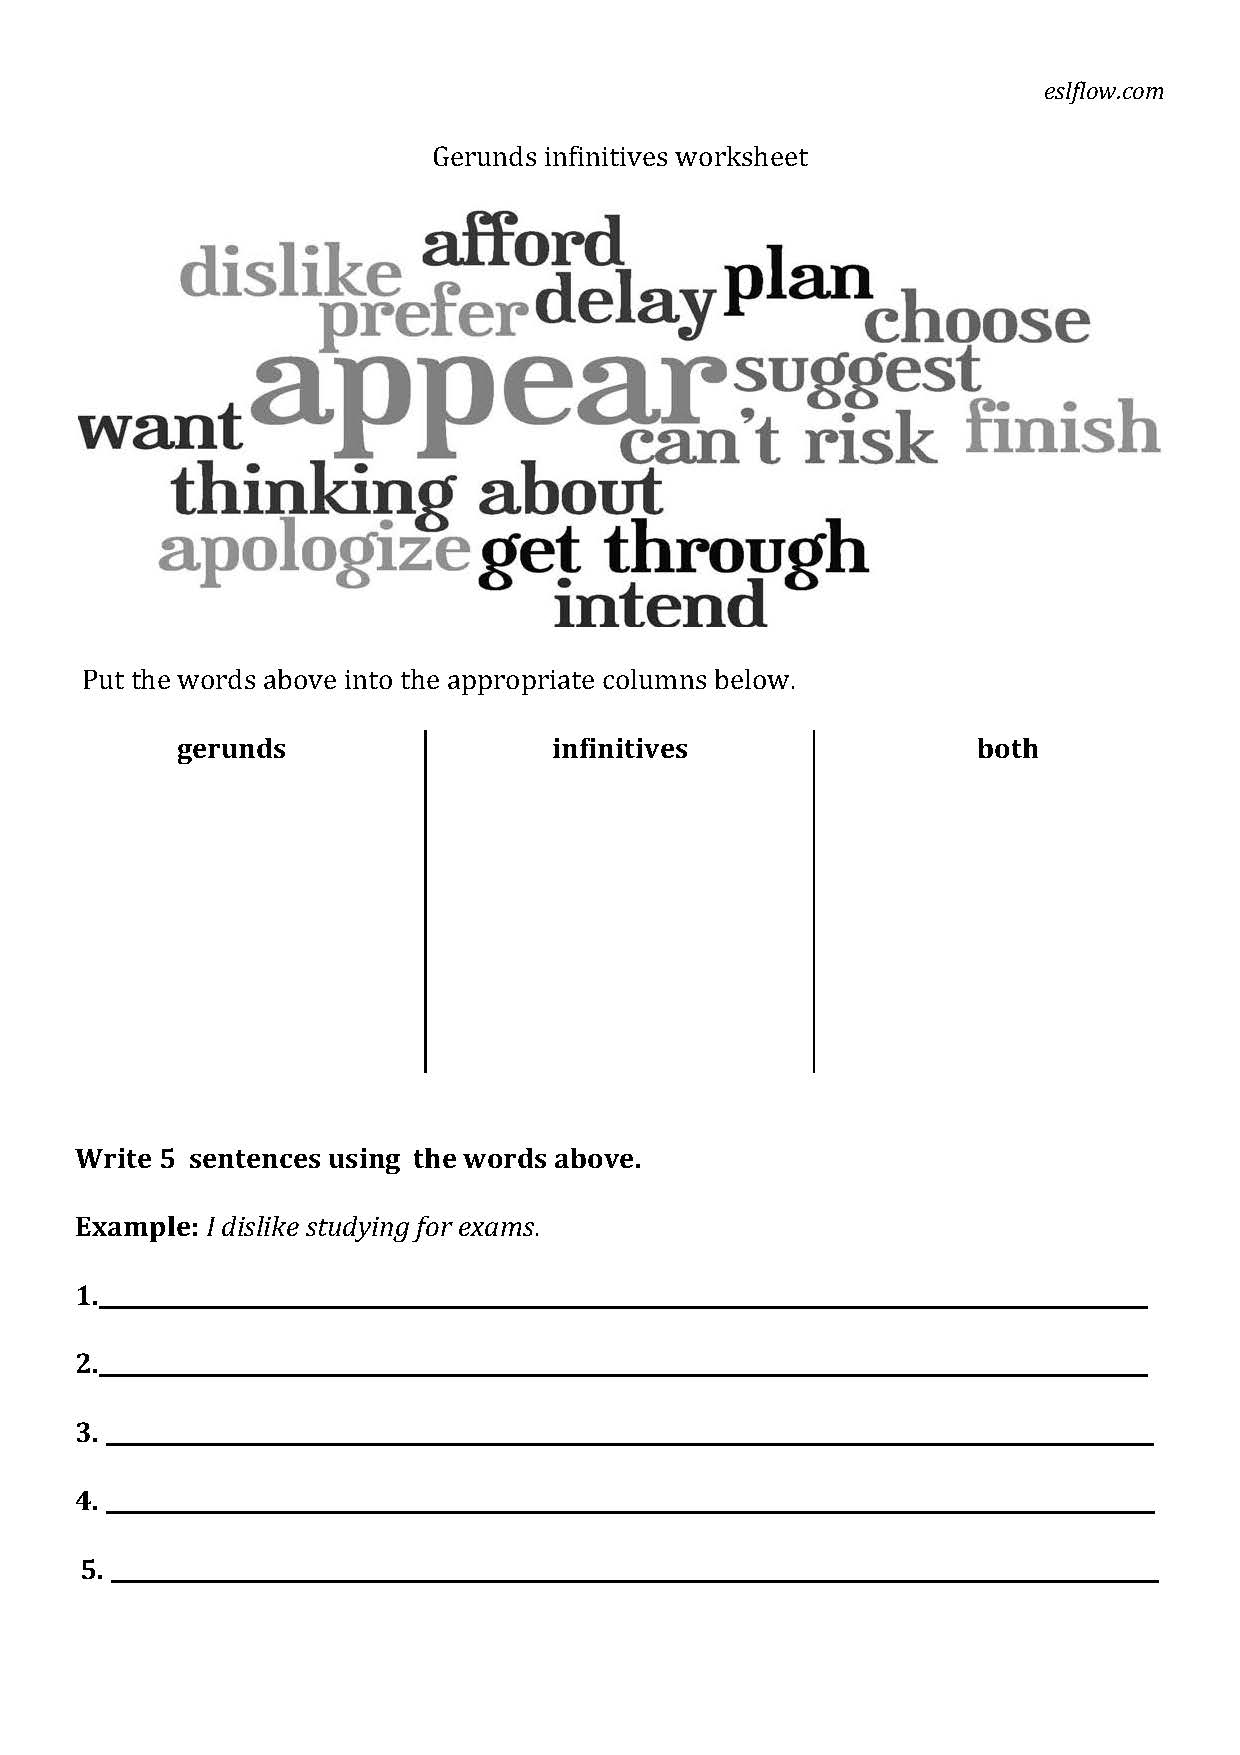 Worksheets Gerunds Worksheet infinitive for kids worksheets gerunds and infinitives exercise answer key